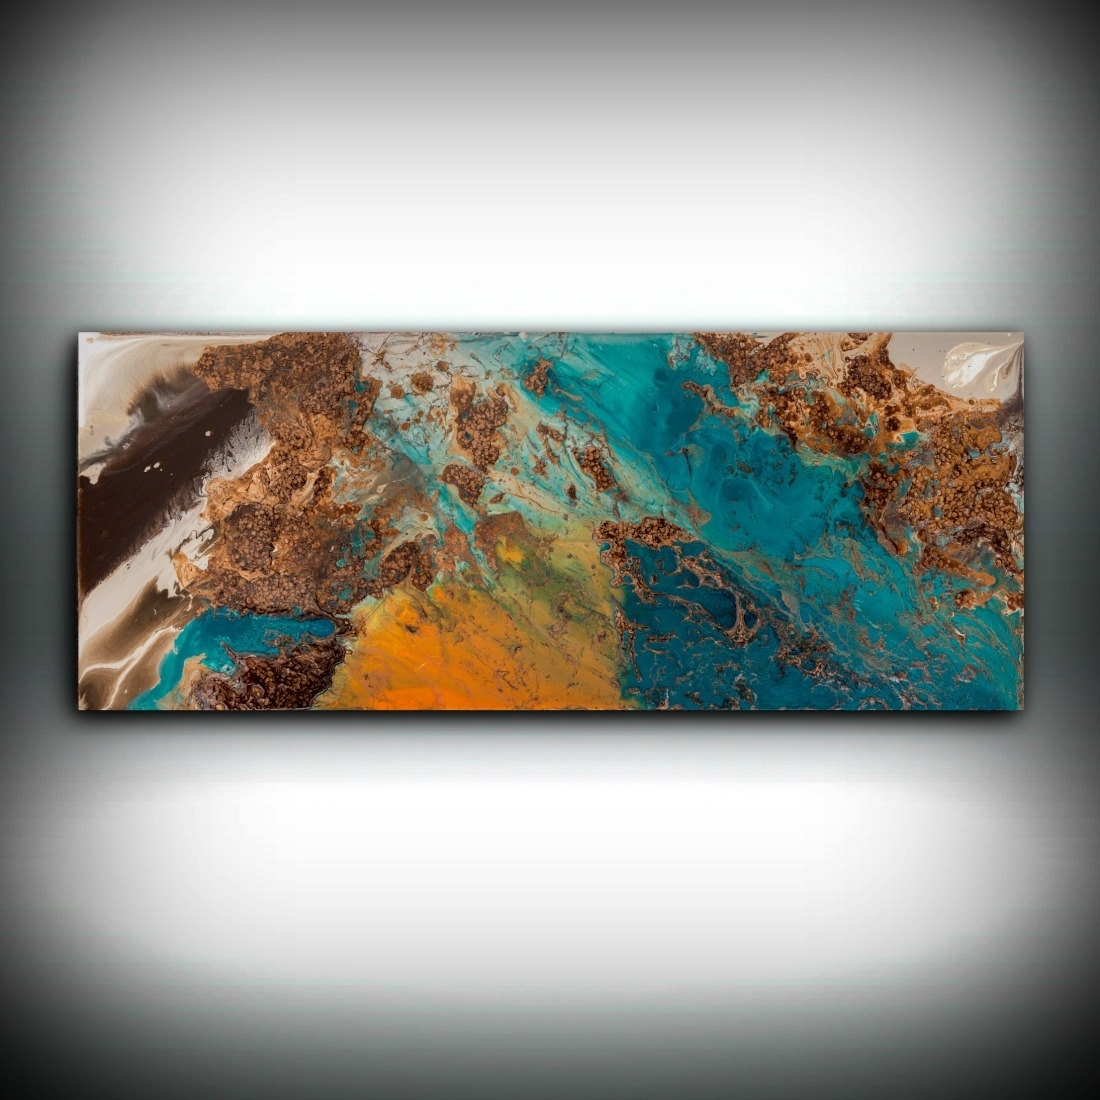 Sale Blue And Copper Art, Wall Art Prints Fine Art Prints Abstract Regarding Most Popular Abstract Wall Art Posters (View 9 of 20)